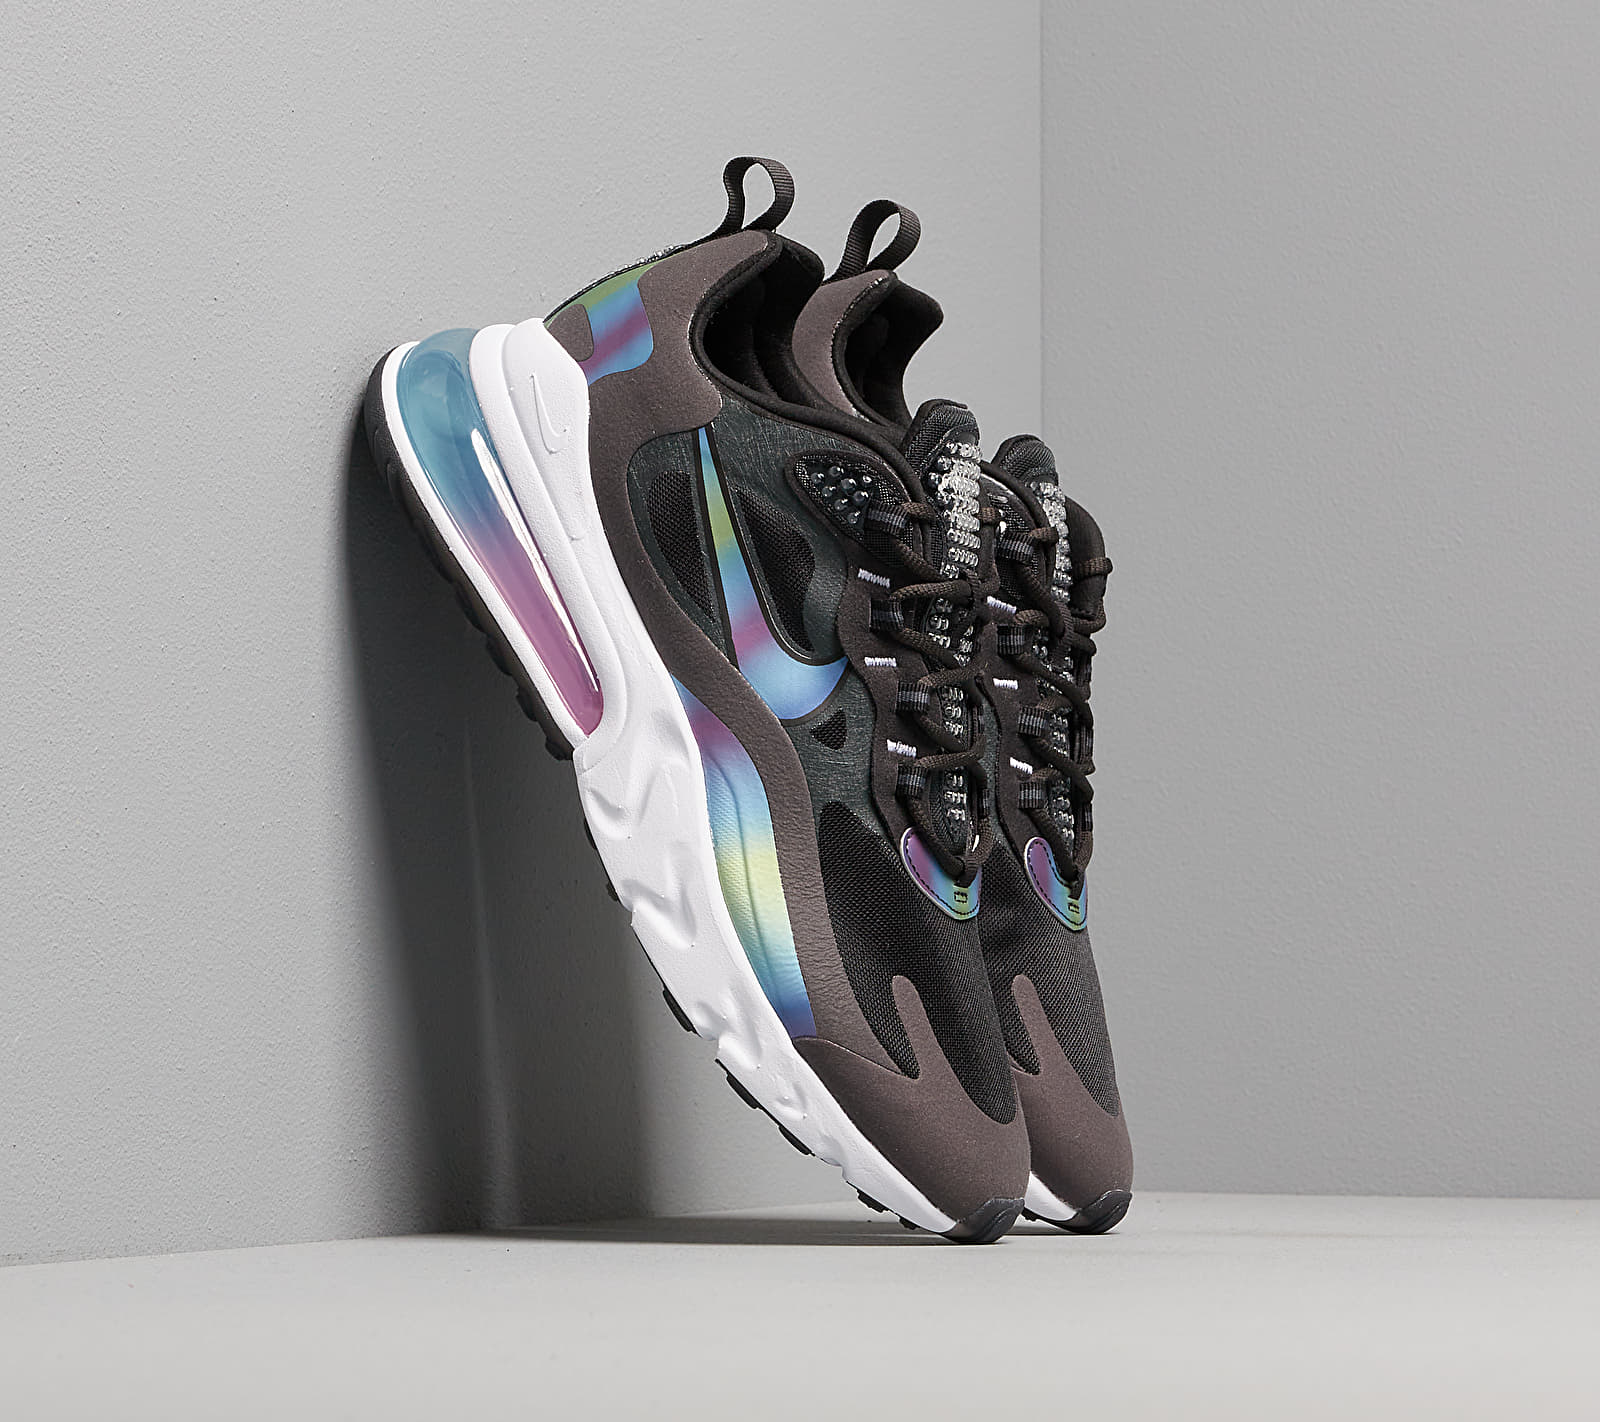 Nike Air Max 270 React 20 Dk Smoke Grey Multi Color Black White Gray Buy At The Price Of 147 00 In Footshop Eu Imall Com